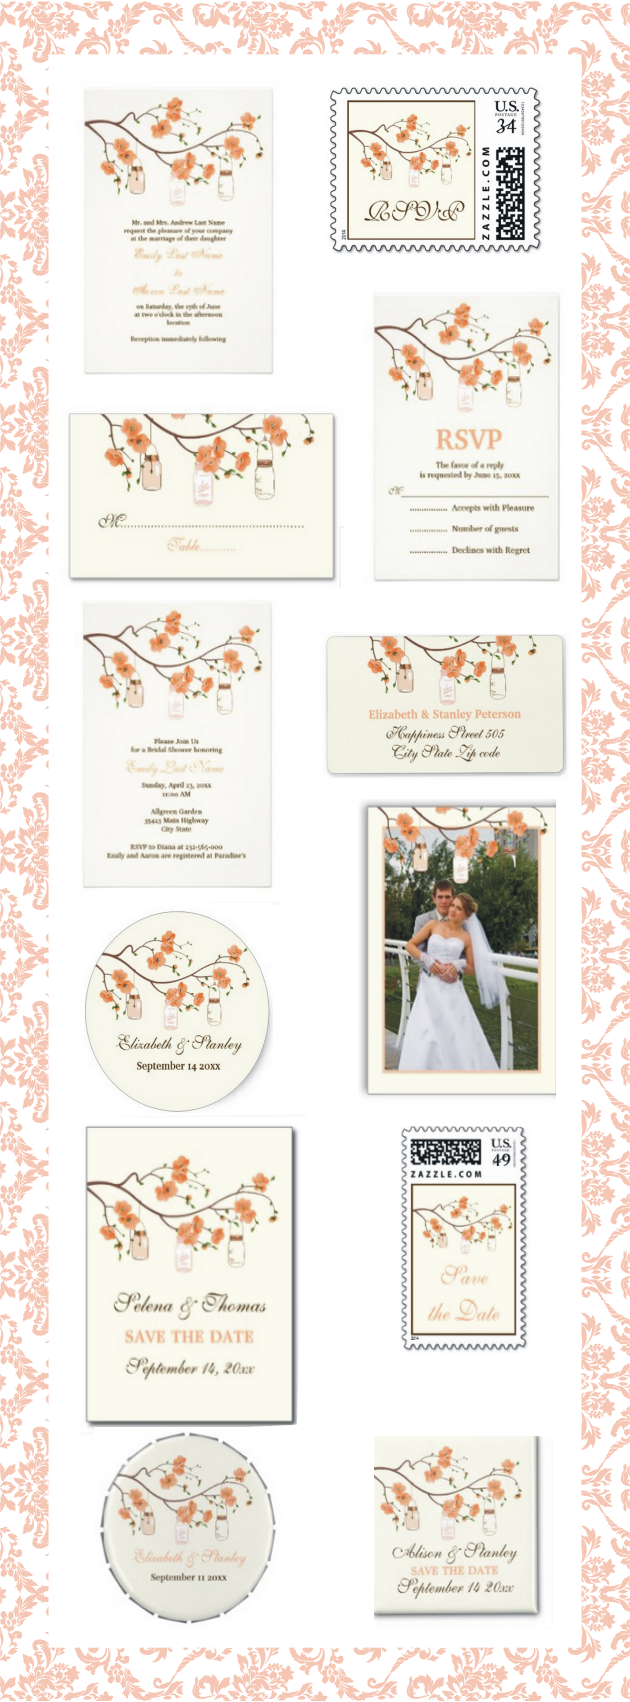 Mason jars and coral, peach cherry blossoms wedding invitations and matching stationery. , #masonjars, #cherryblossoms, #peach, #coral, #wedding, #invitations, #invites, #weddinginvitations, #weddinginvites